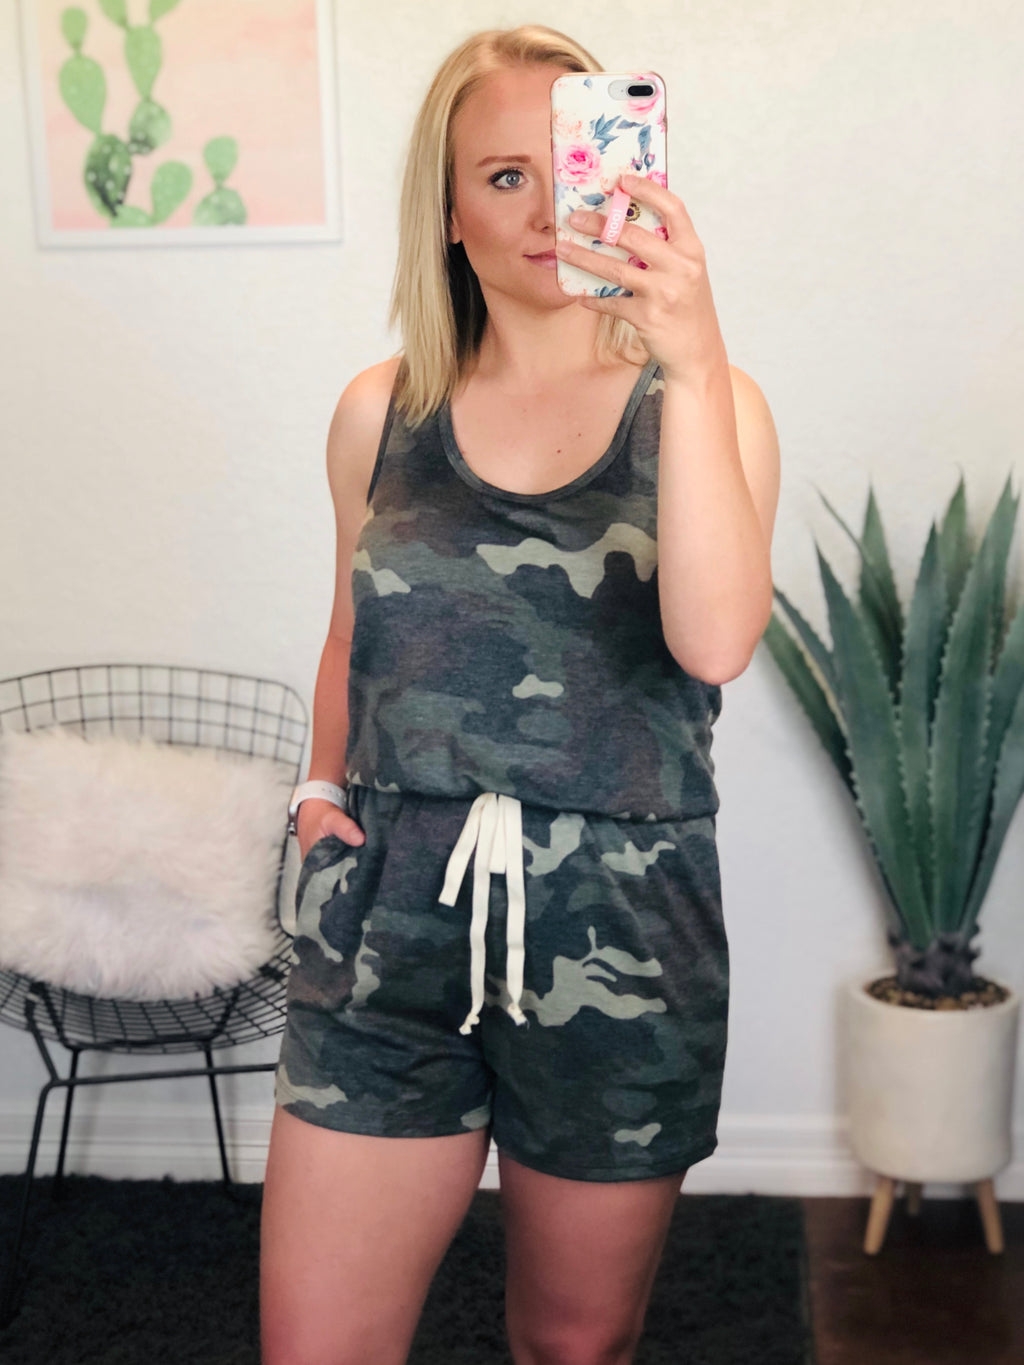 "This racerback camo romper is crazy comfy! I love the elastic waist band and faux tie detail in the front. It's perfect to throw on with some cute sneakers and a denim jacket! Model is wearing a medium for extra length in the torso.  FABRIC CONTENT:  82% Polyester / 15% Rayon / 3% Spandex  WASH INSTRUCTIONS: Hand was in cold water, do not bleach, hang dry, no iron  MODEL DETAILS: 5'4"" tall, 32 DD, 28"" waist, 36"" hips   MEASUREMENTS: (bust and hip taken across the front only)  Small:  Bust - 15.5"", Hips - 17"